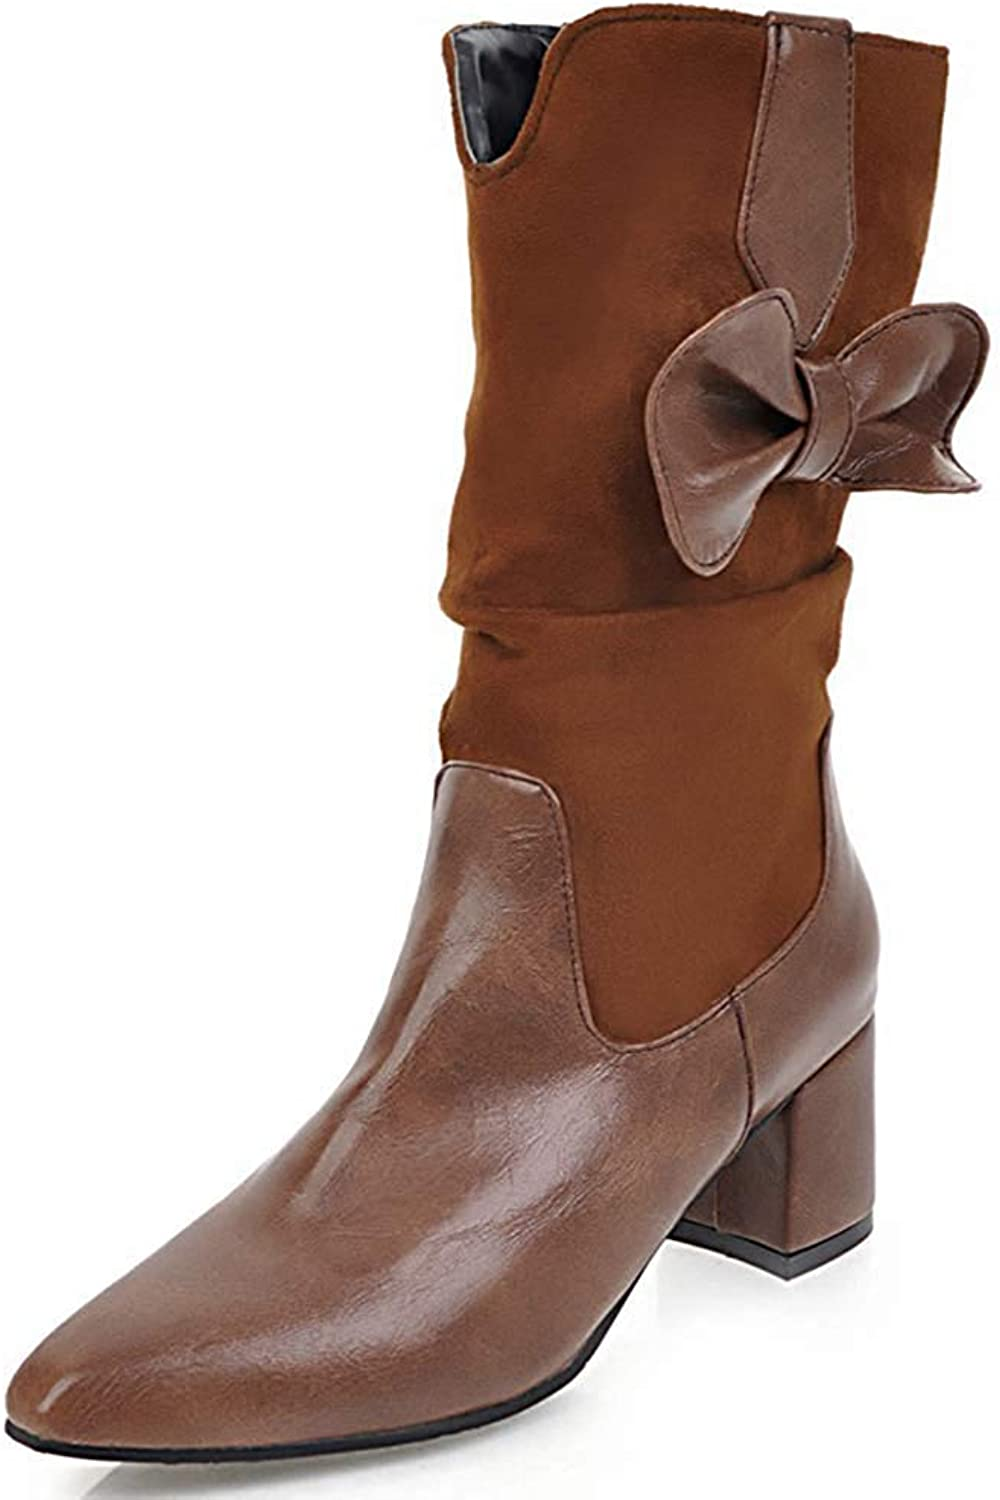 Gedigits Women's Dressy Bow Pointed Toe Medium Block Heel Slouchy Pull On Mid Calf Boots Brown 4.5 M US